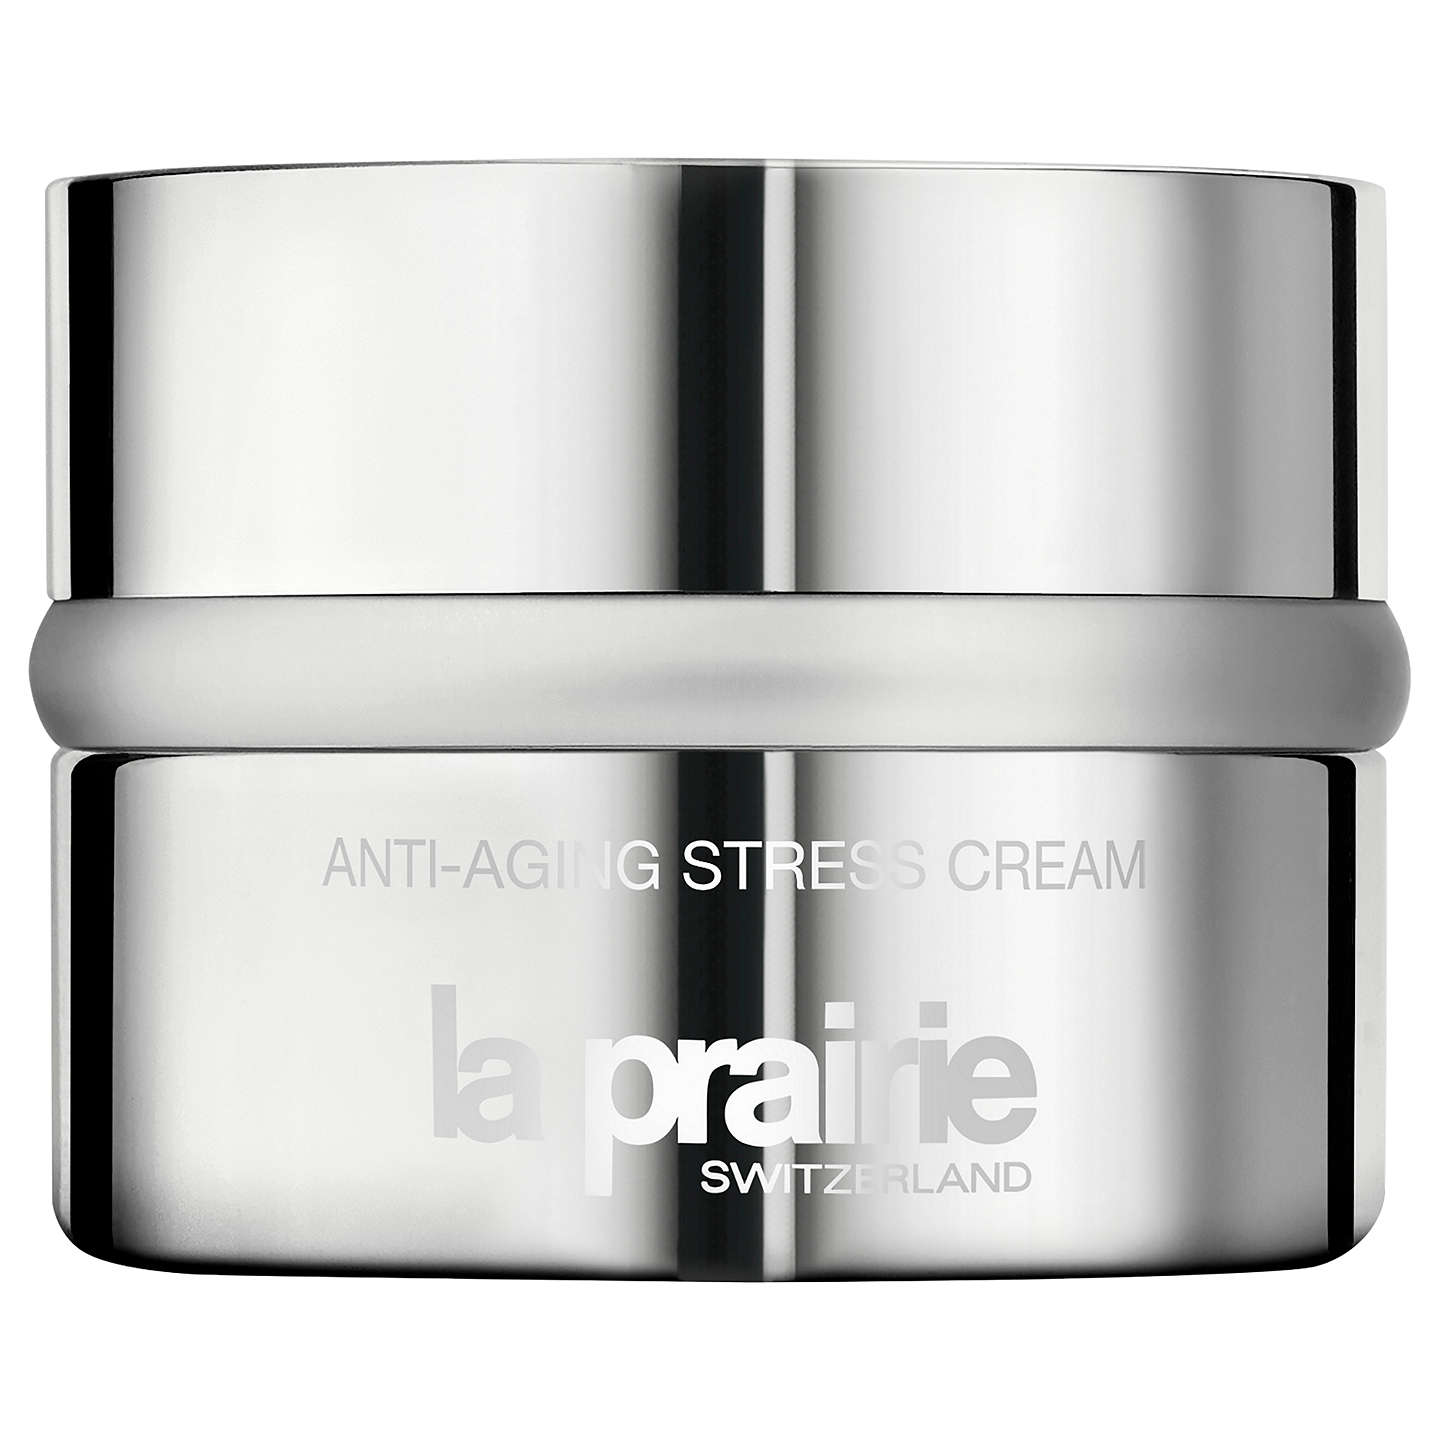 BuyLa Prairie Anti-Aging Stress Cream, 50ml Online at johnlewis.com